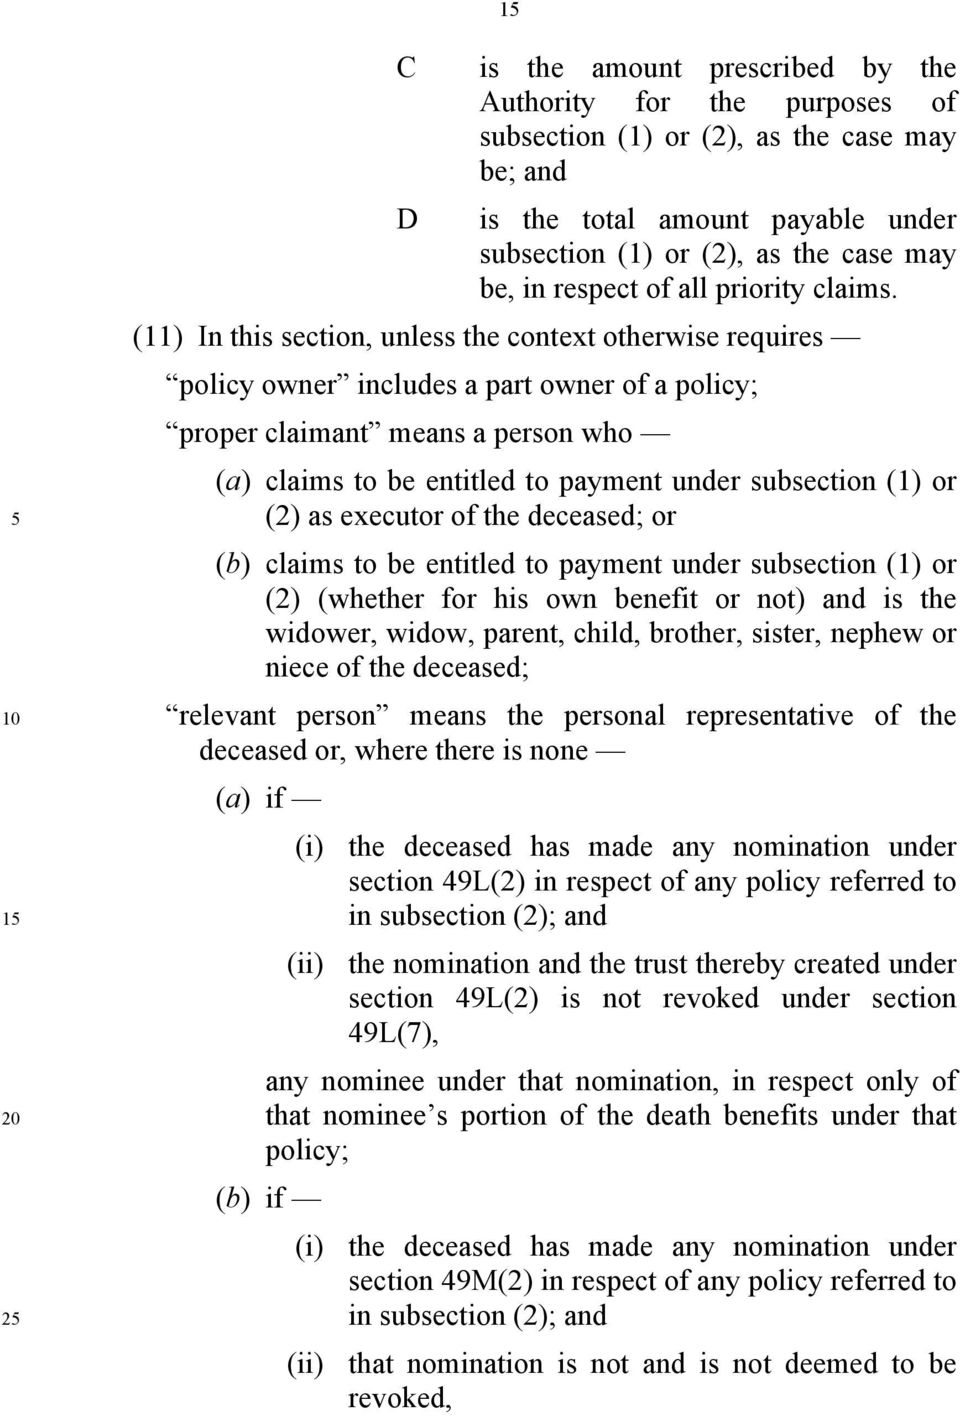 (11) In this section, unless the context otherwise requires policy owner includes a part owner of a policy; proper claimant means a person who (a) claims to be entitled to payment under subsection